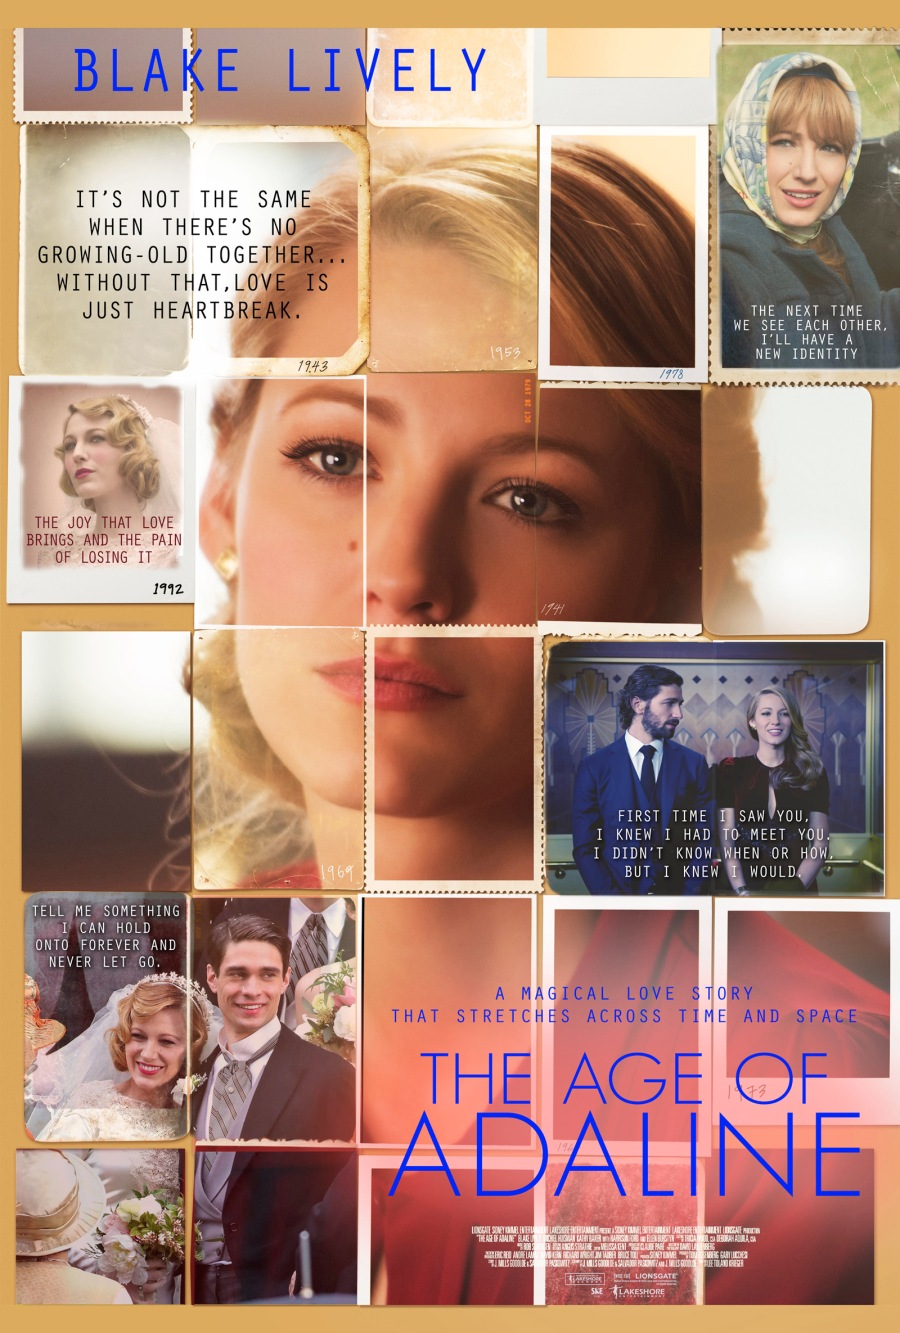 AGE OF ADALINE poster